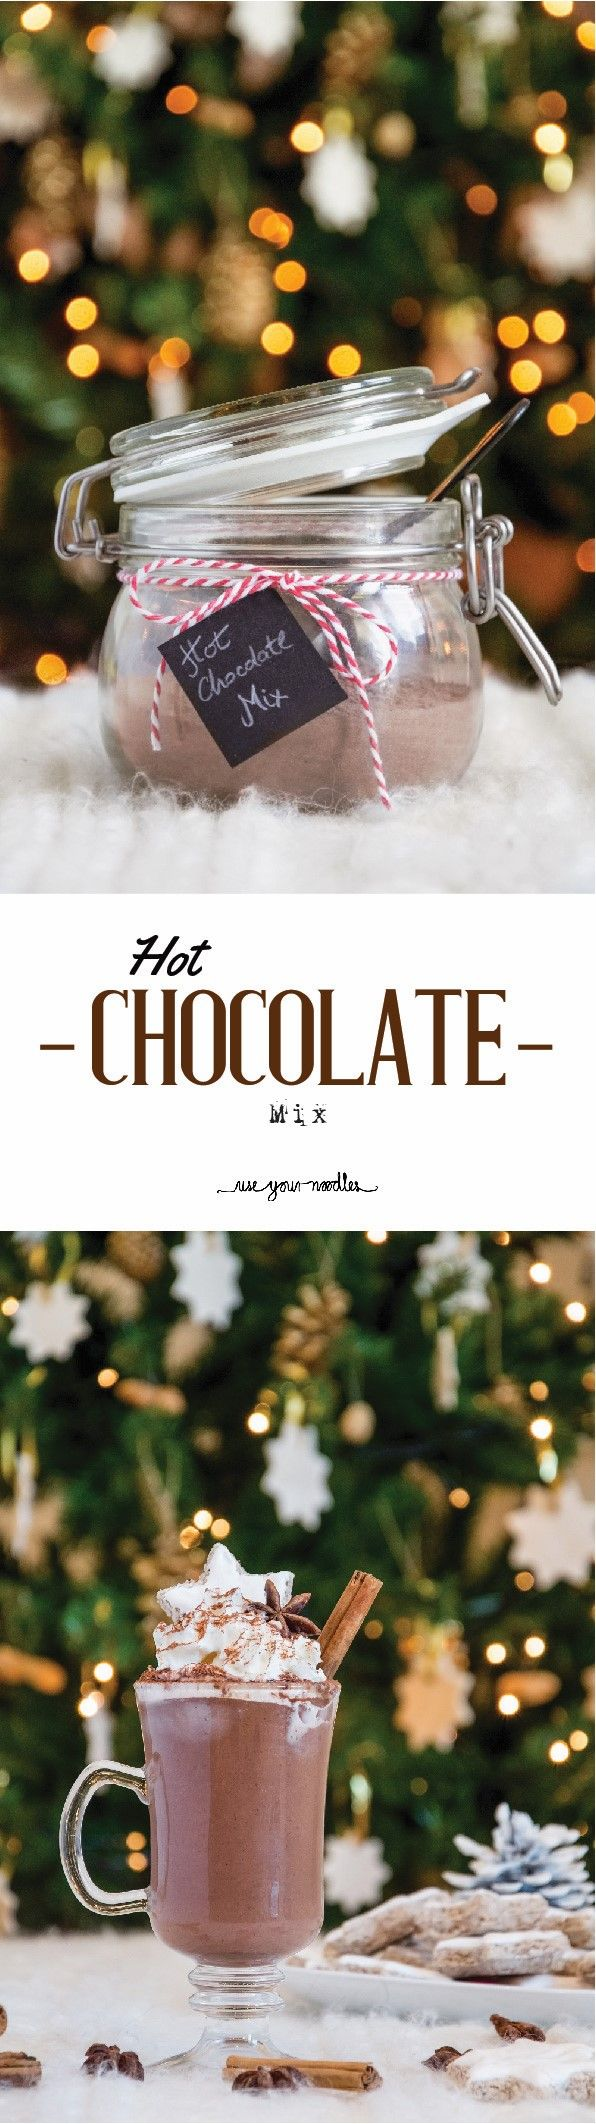 Homemade Hot Chocolate Mix. Let's get warm today with a little hot chocolate! It's time to make gifts, and I love homemade gifts. And this hot chocolate mix is a perfect gift.